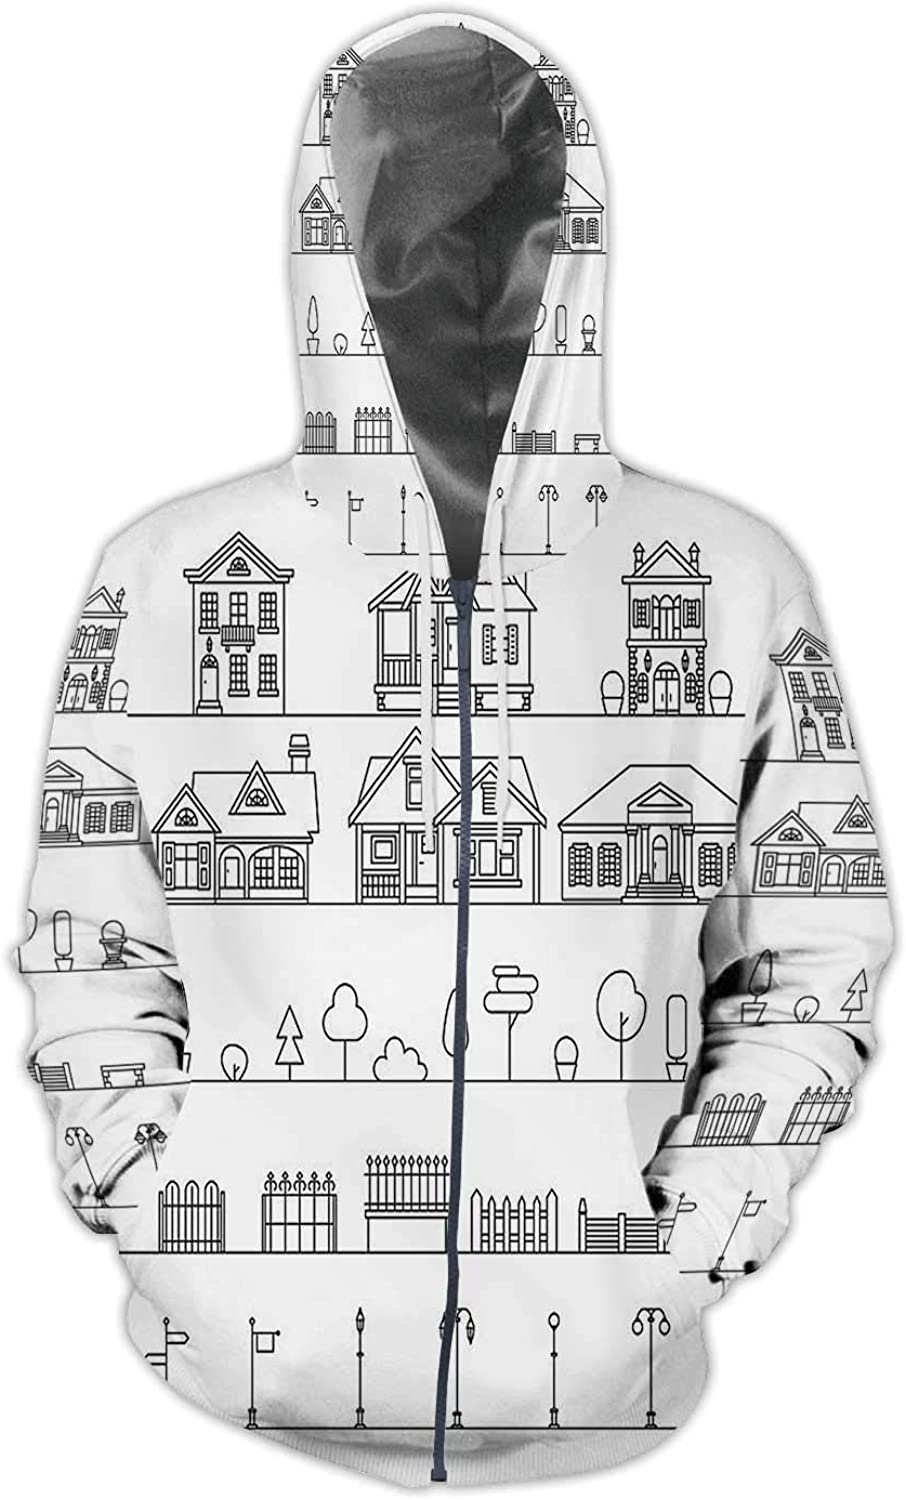 C COABALLA Bathroom Planning Design USA,Mens Print 3D Fashion Hoodies Sweatshirts Bathroom S